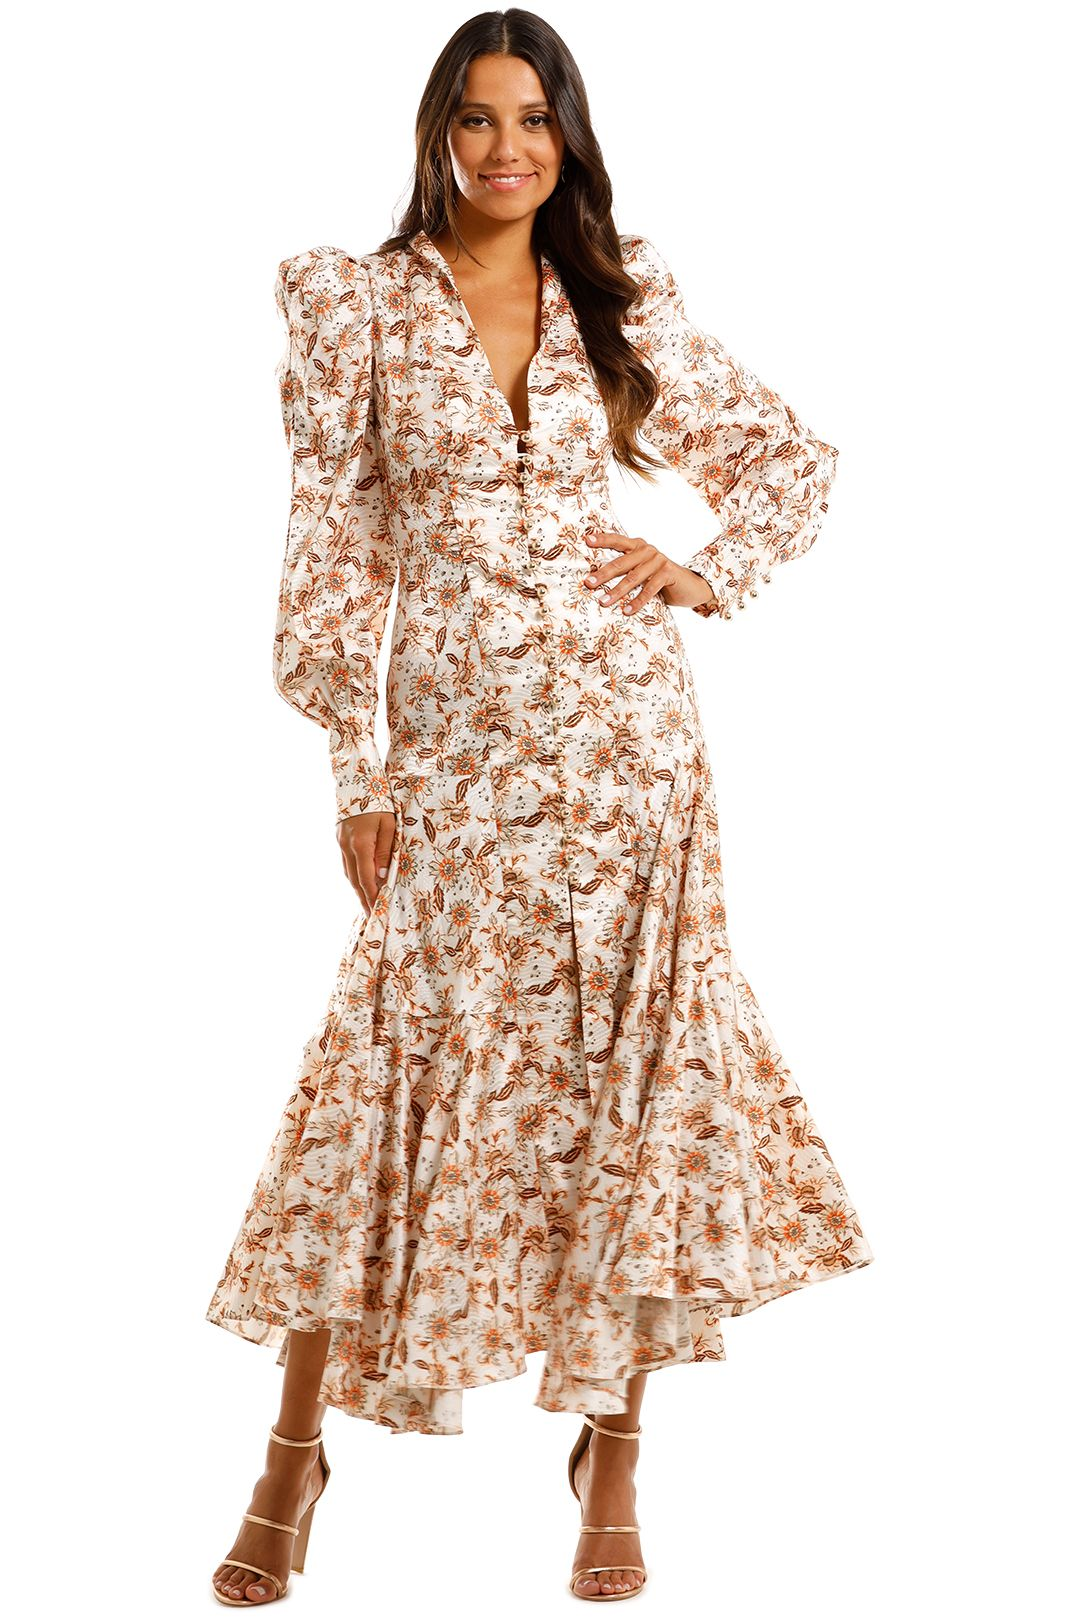 Acler Horrock Long Dress Floral Paisley